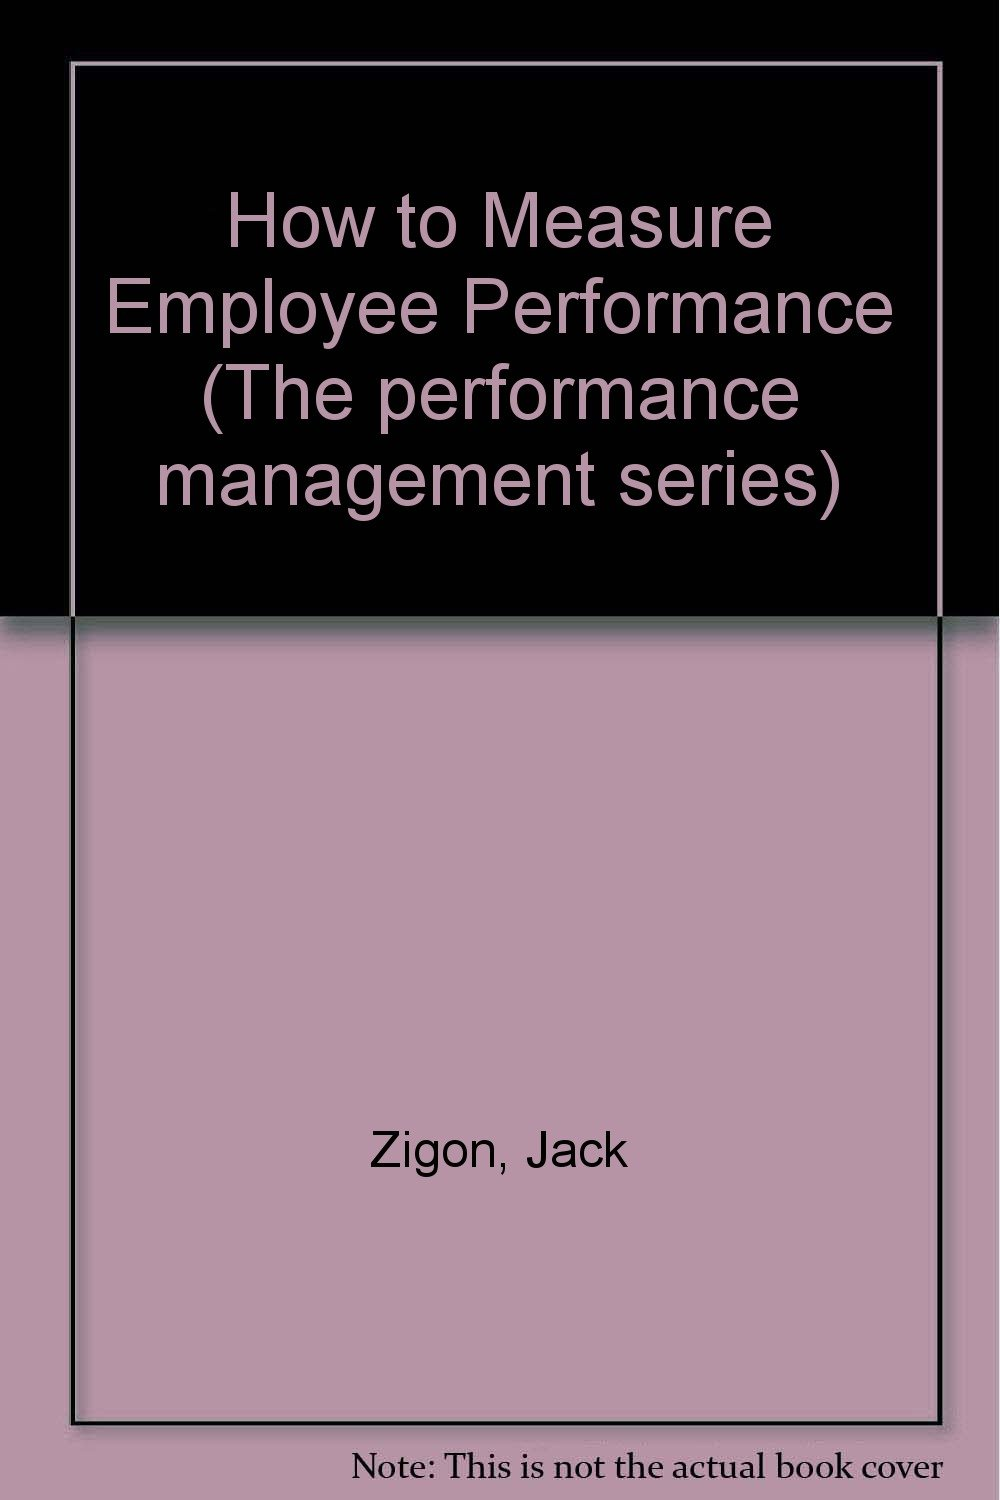 How to Measure Employee Performance (The performance management series)